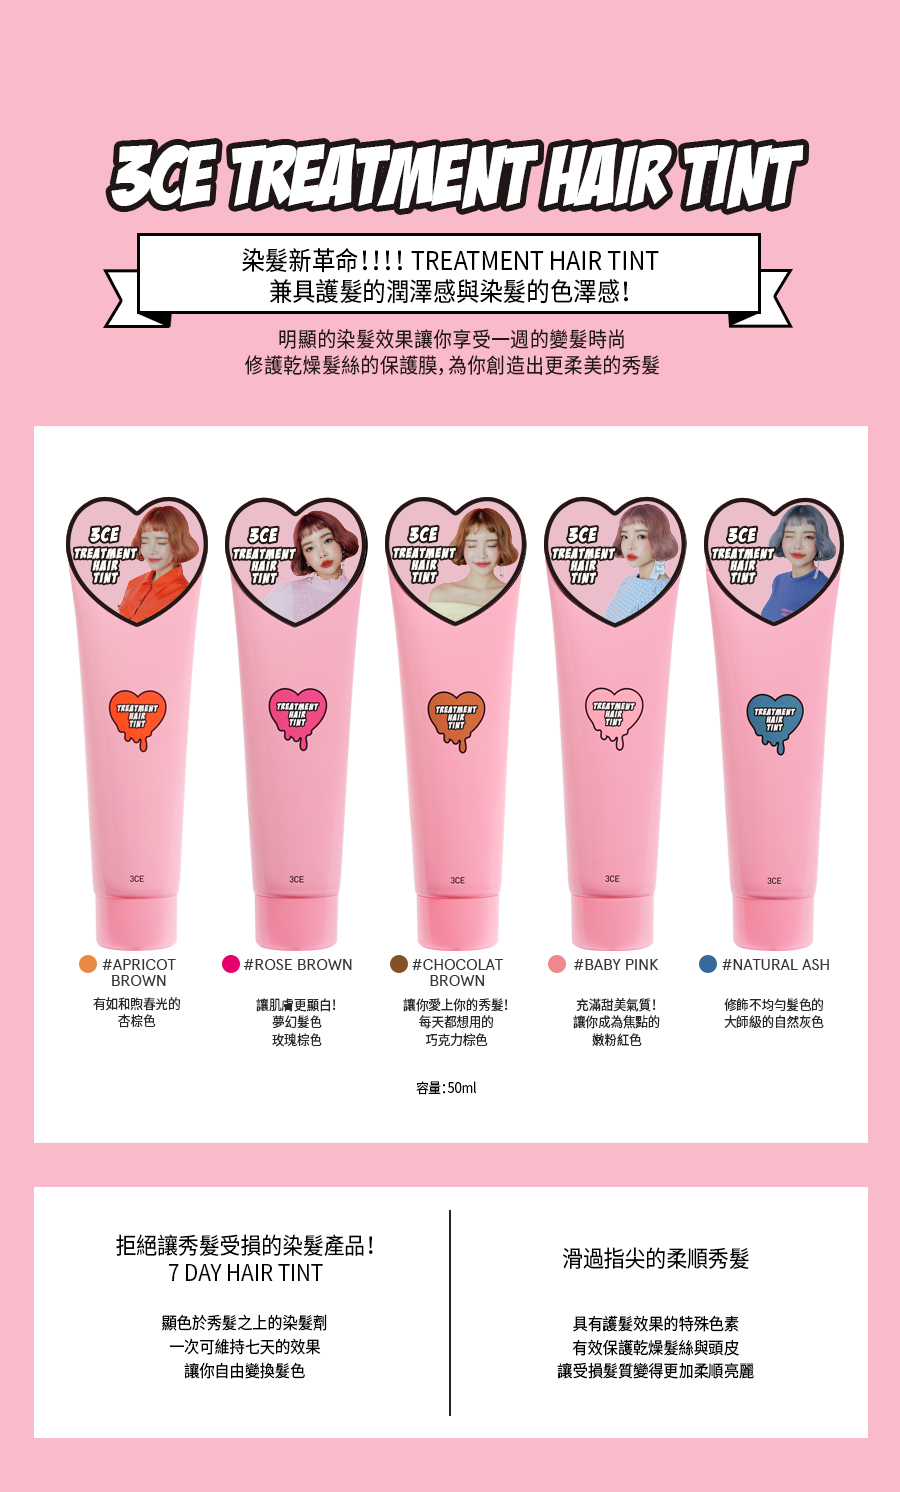 170421-hairtint(1)_tw.jpg